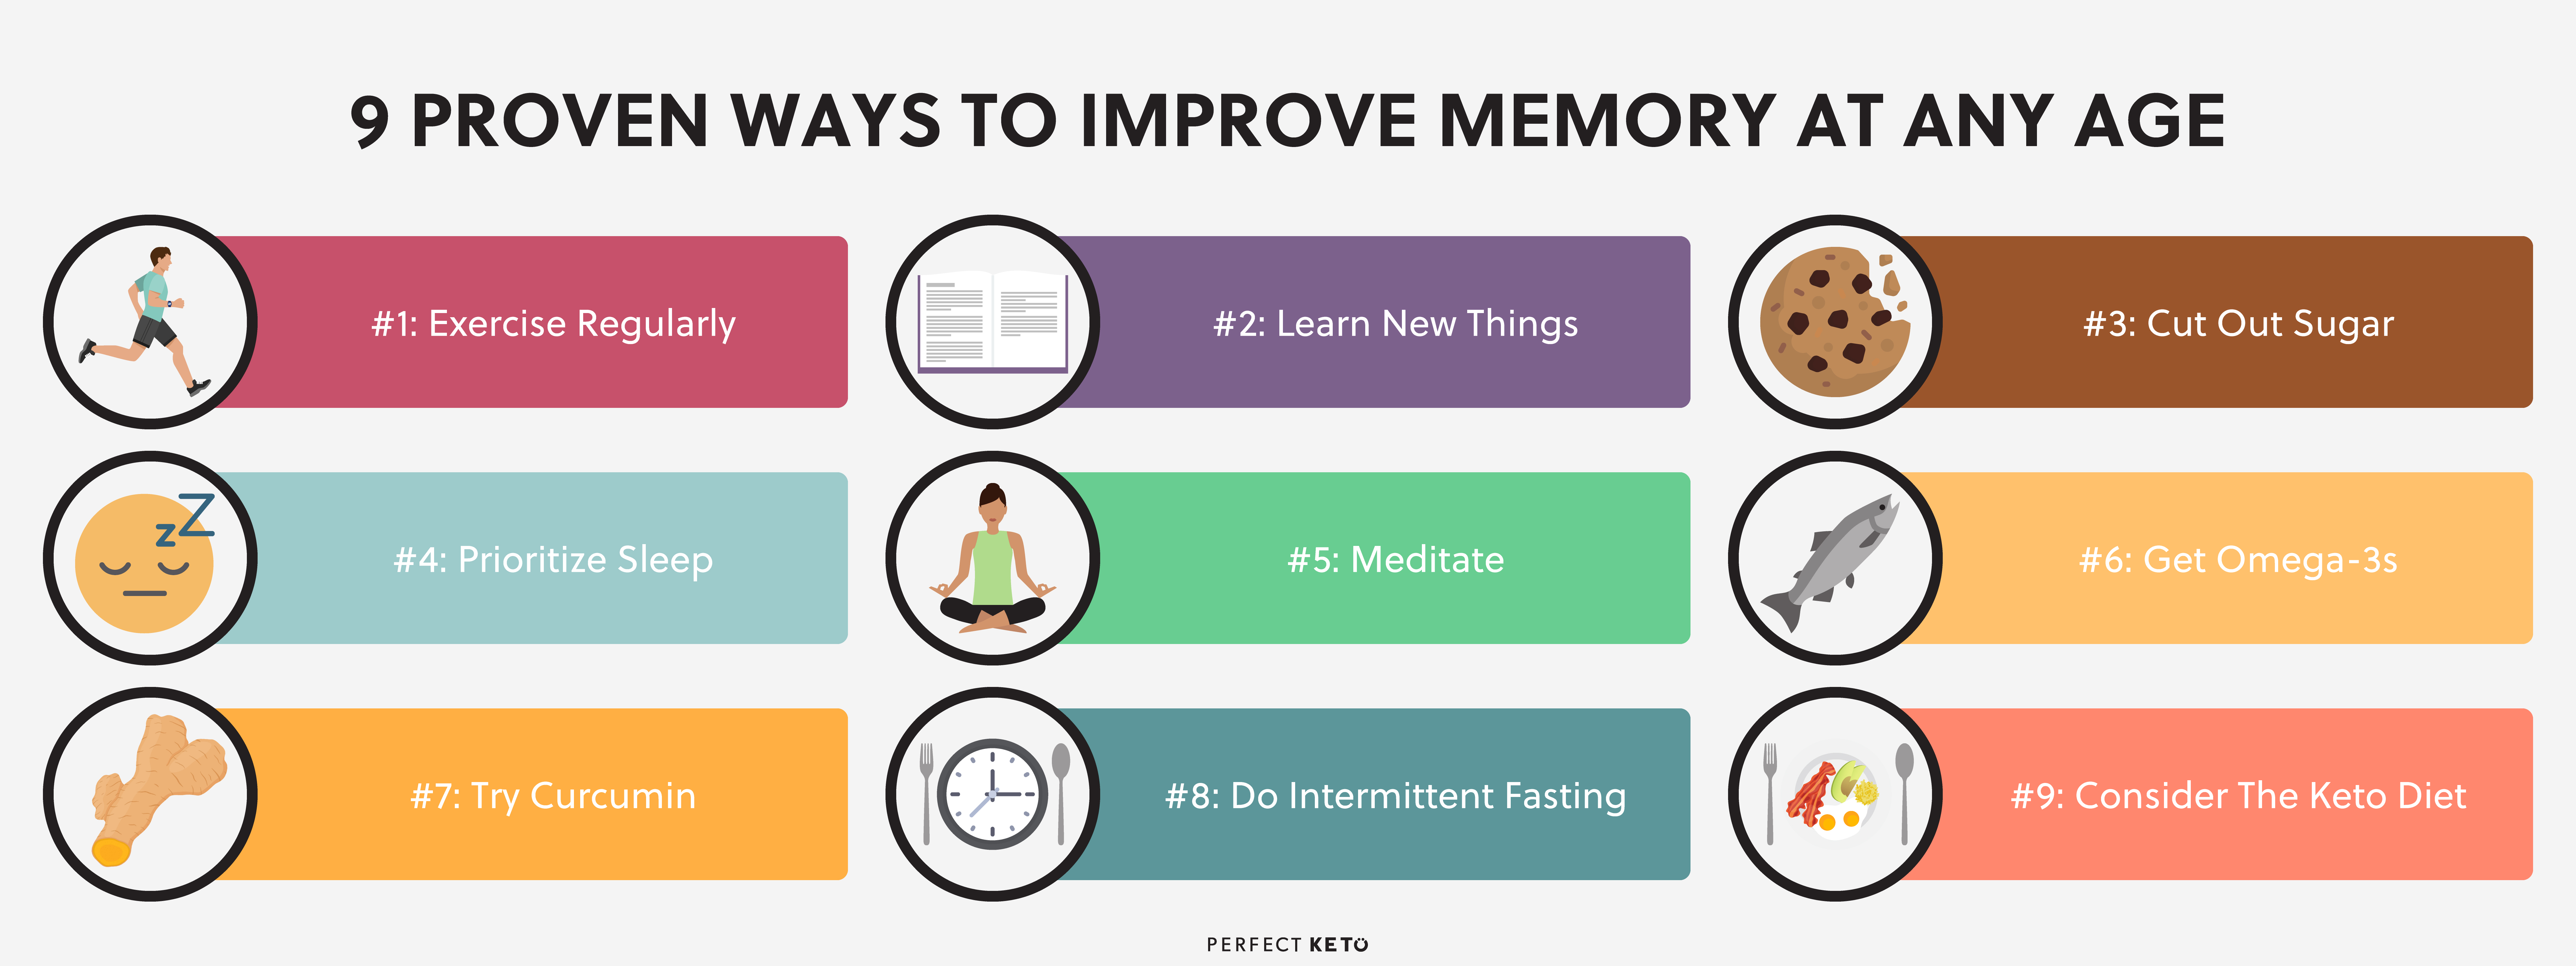 9-proven-ways-to-improve-memory-at-any-age.jpg